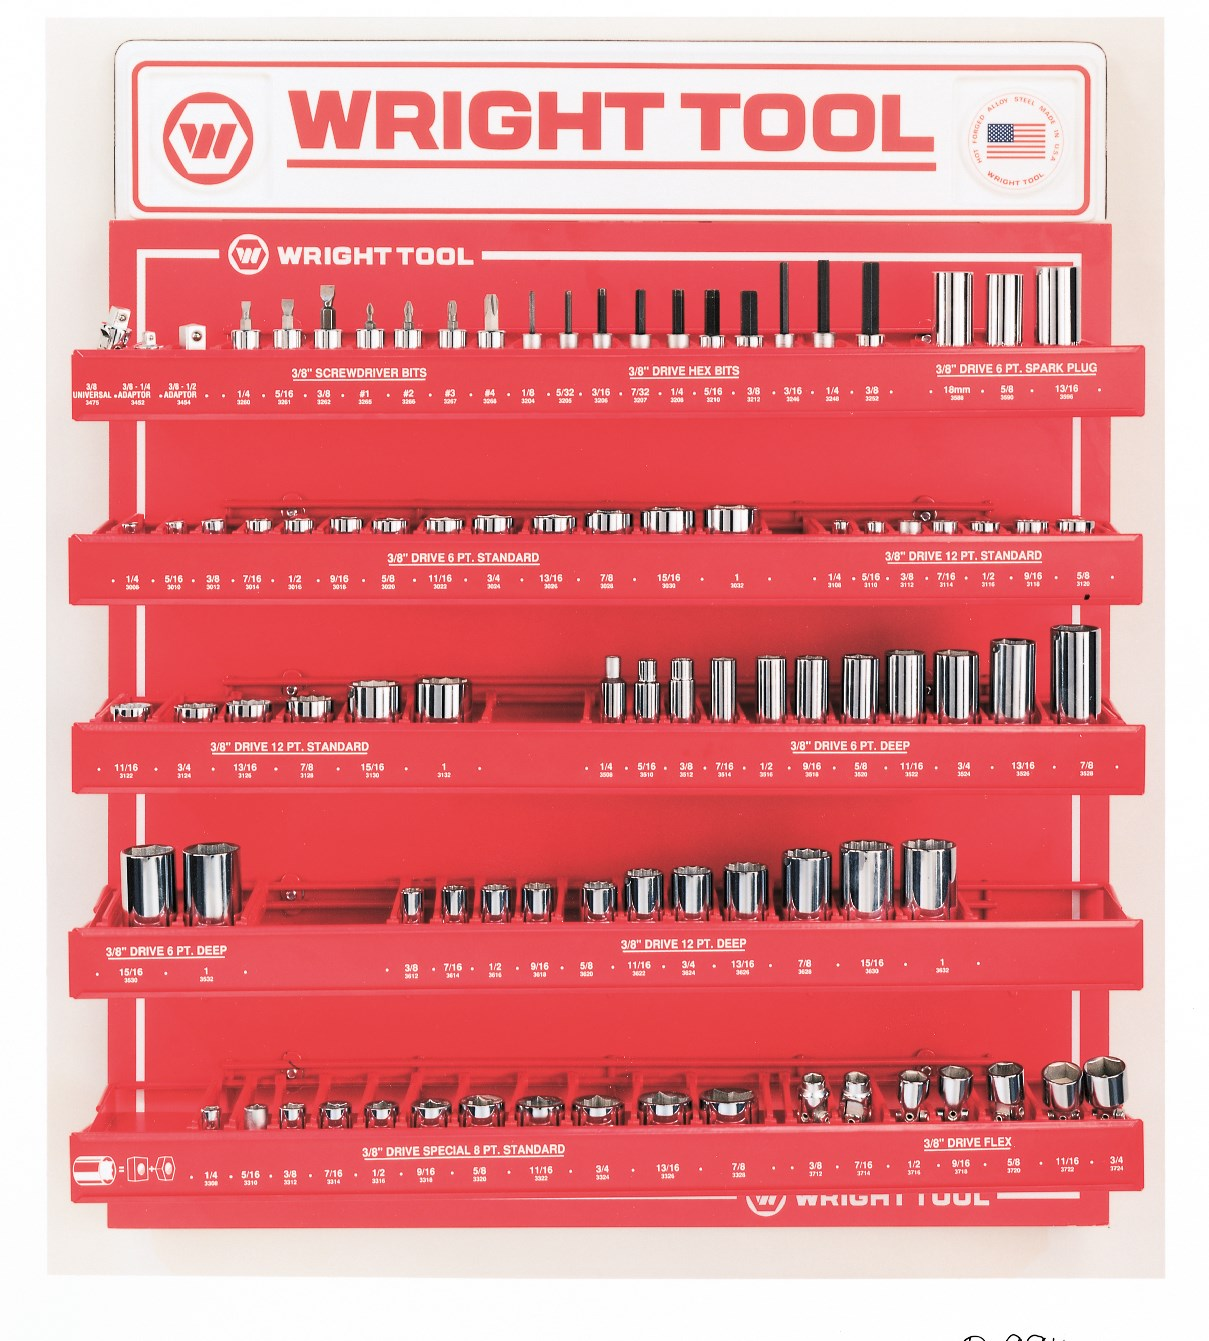 Wright Tool D948 40 Piece 1/2-inch Drive 12-Point Standard and Deep Sockets